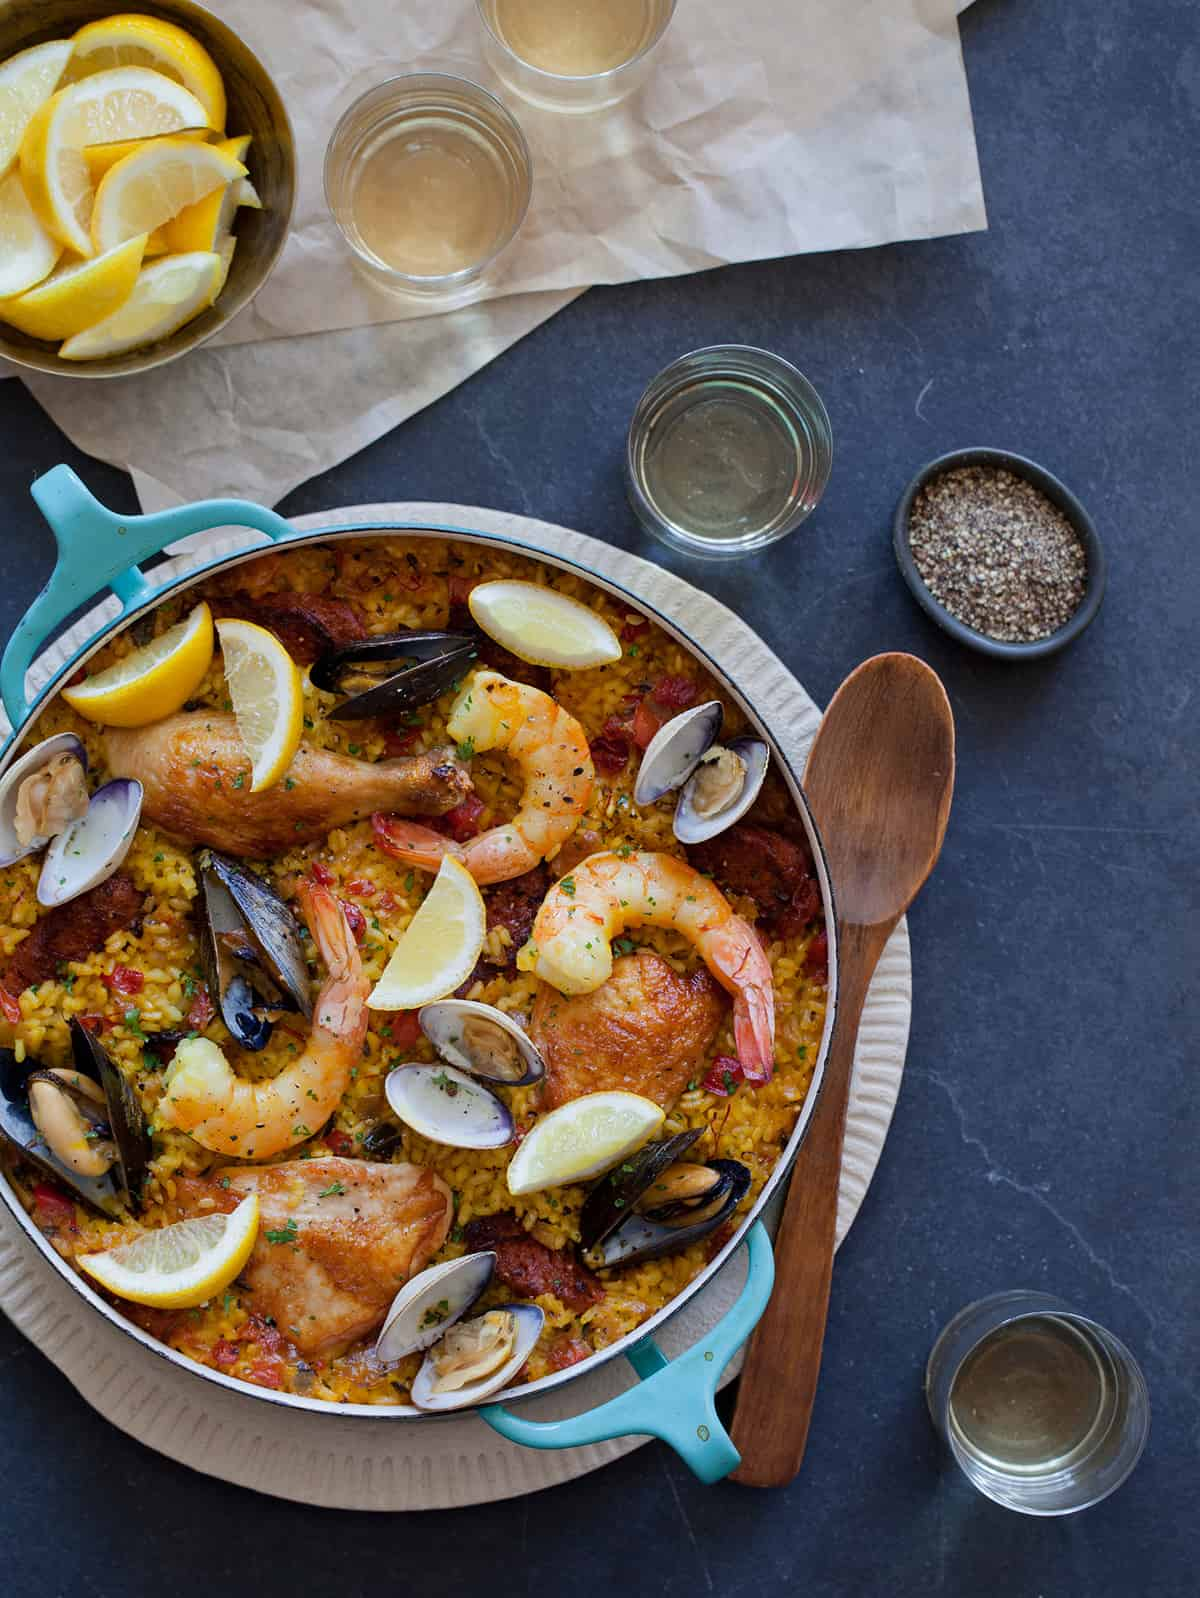 A pot of paella with spices in bowls, lemon wedges, and a wooden spoon.